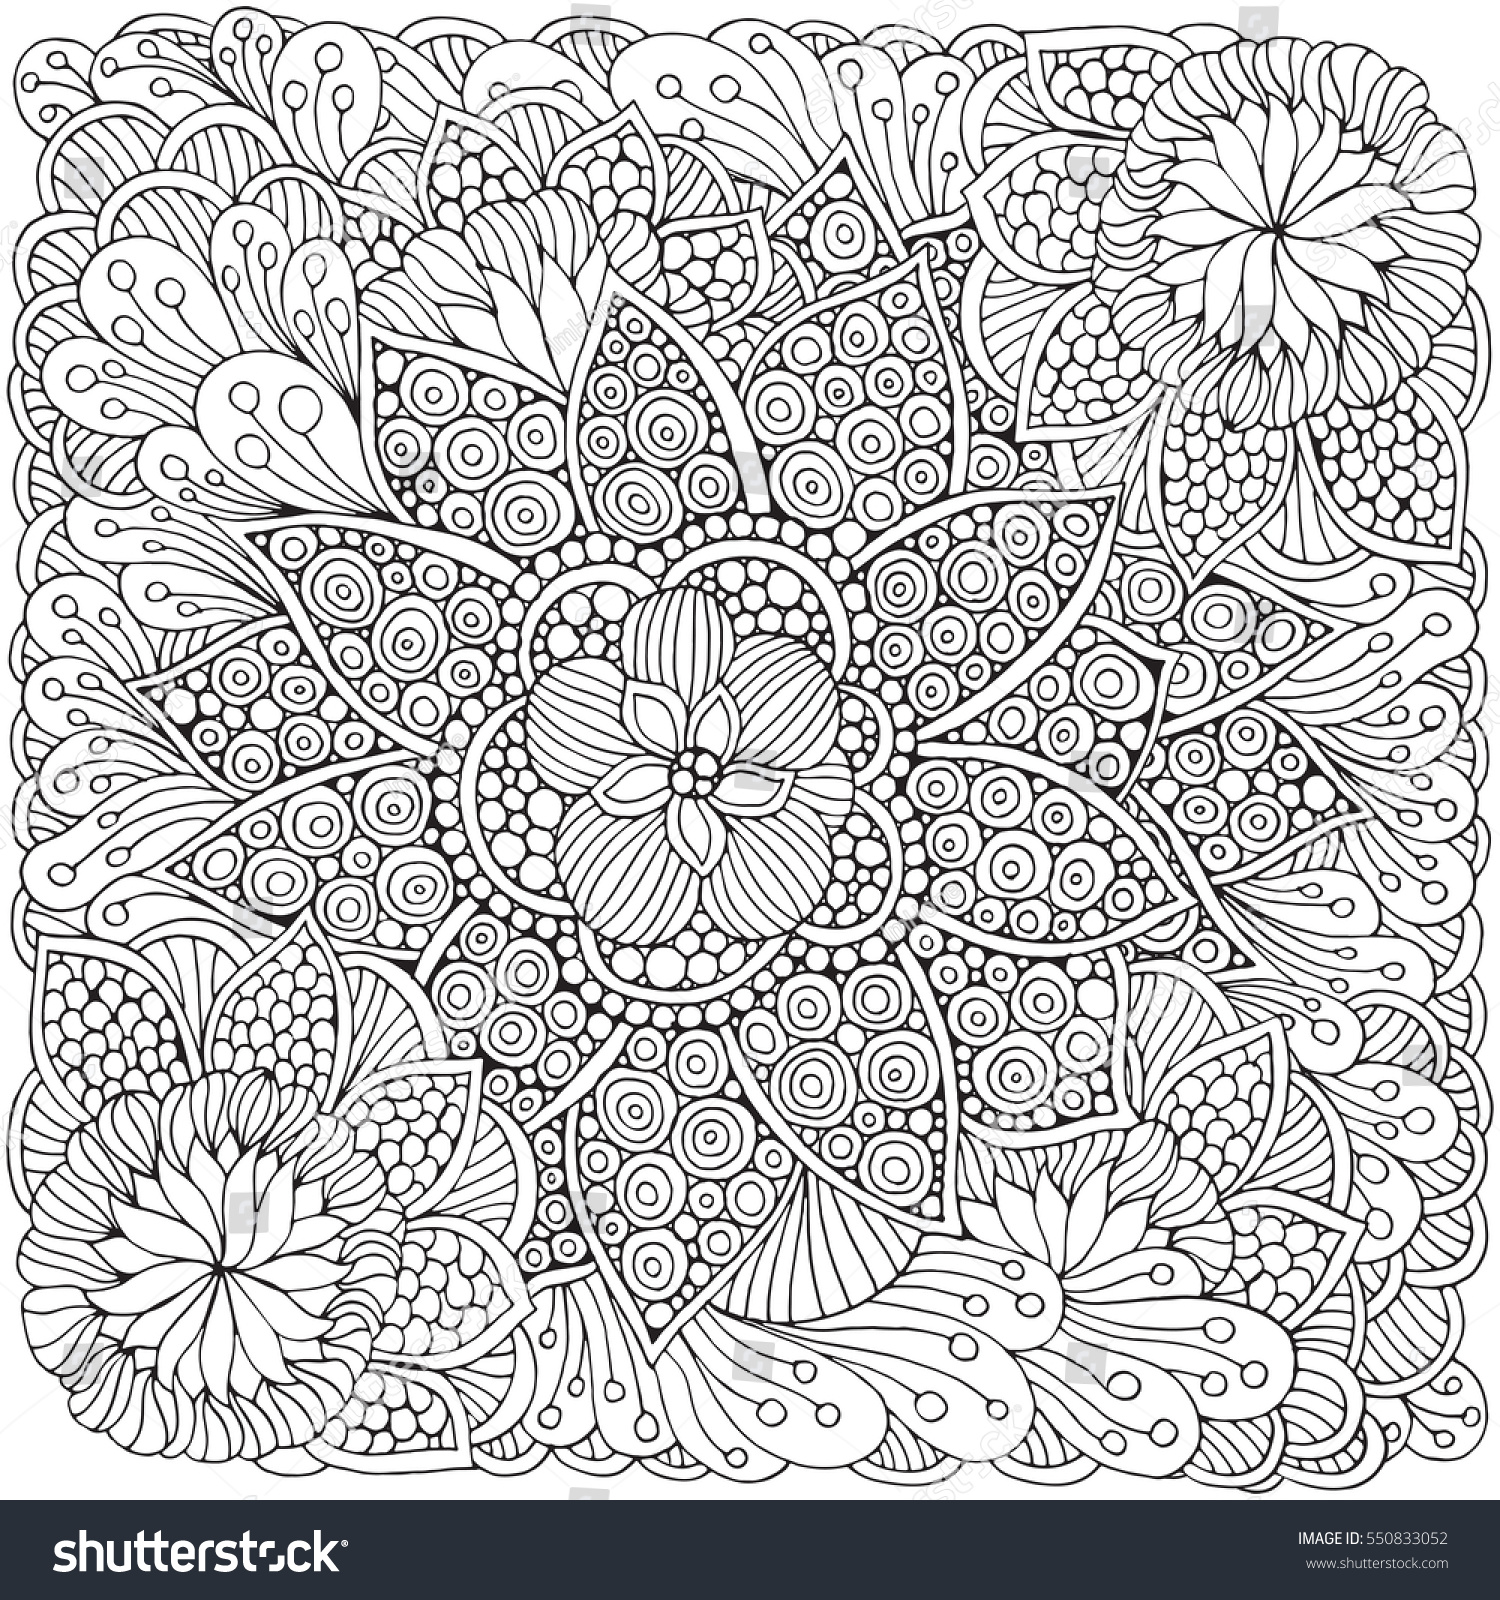 Pattern For Adult Coloring Book Ethnic Floral Retro Doodle Vector